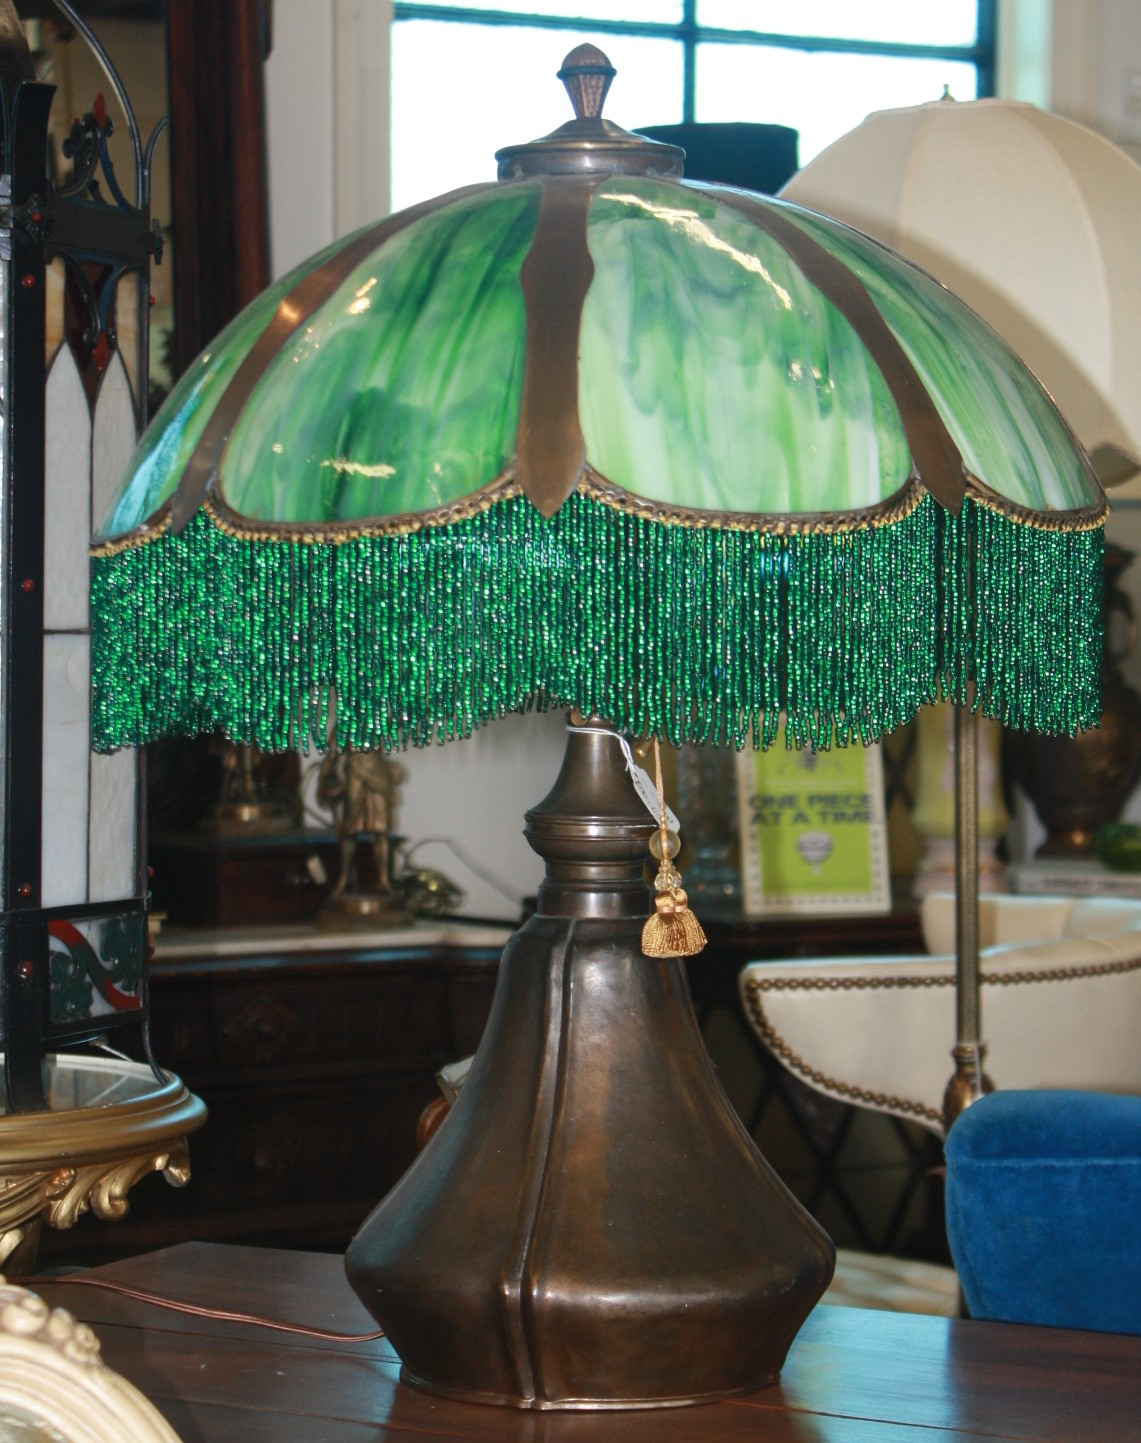 71 italian hand made glass bead lamp shade fringe for sale 71 italian hand made glass bead lamp shade fringe for sale antiques classifieds mozeypictures Gallery